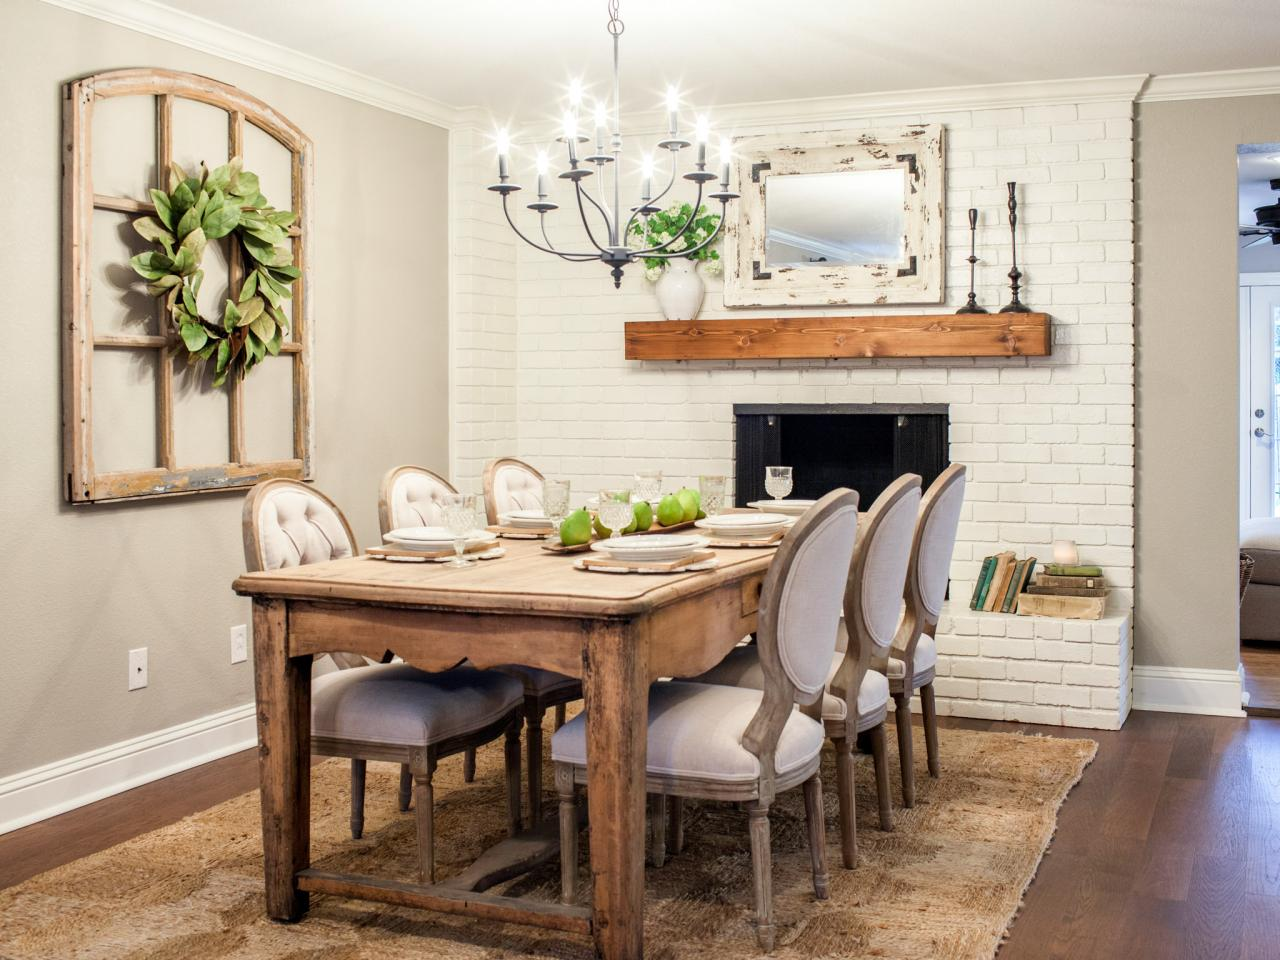 Joanna Gaines Farmhouse Dining Room Room From Fixer Upper